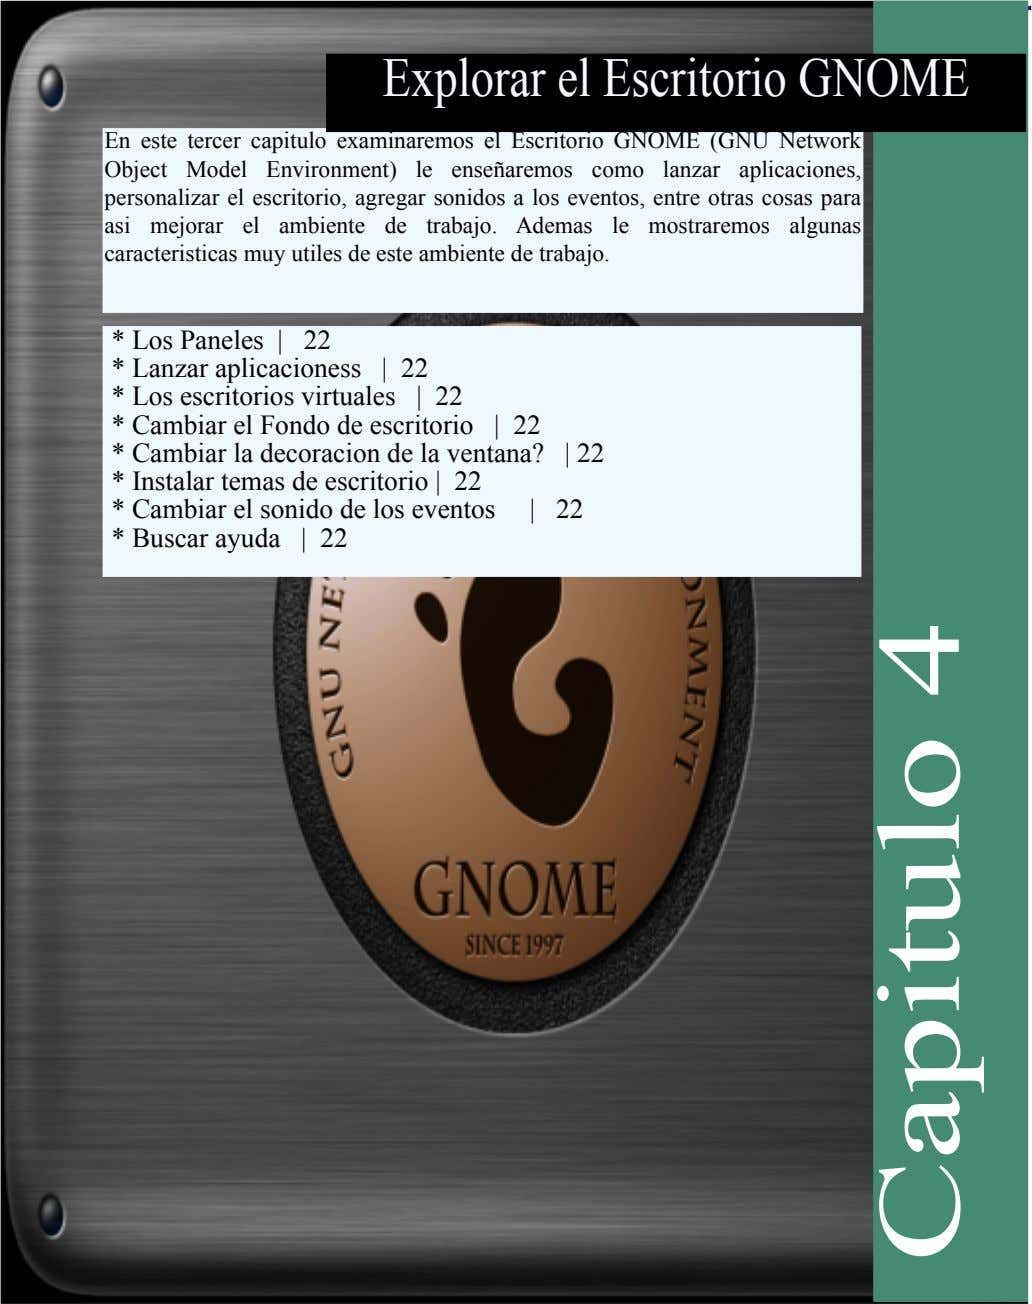 ExplorarelEscritorioGNOME En este tercer capitulo exam inarem os elEscritorio GNOME (GNU Netw ork Object Model